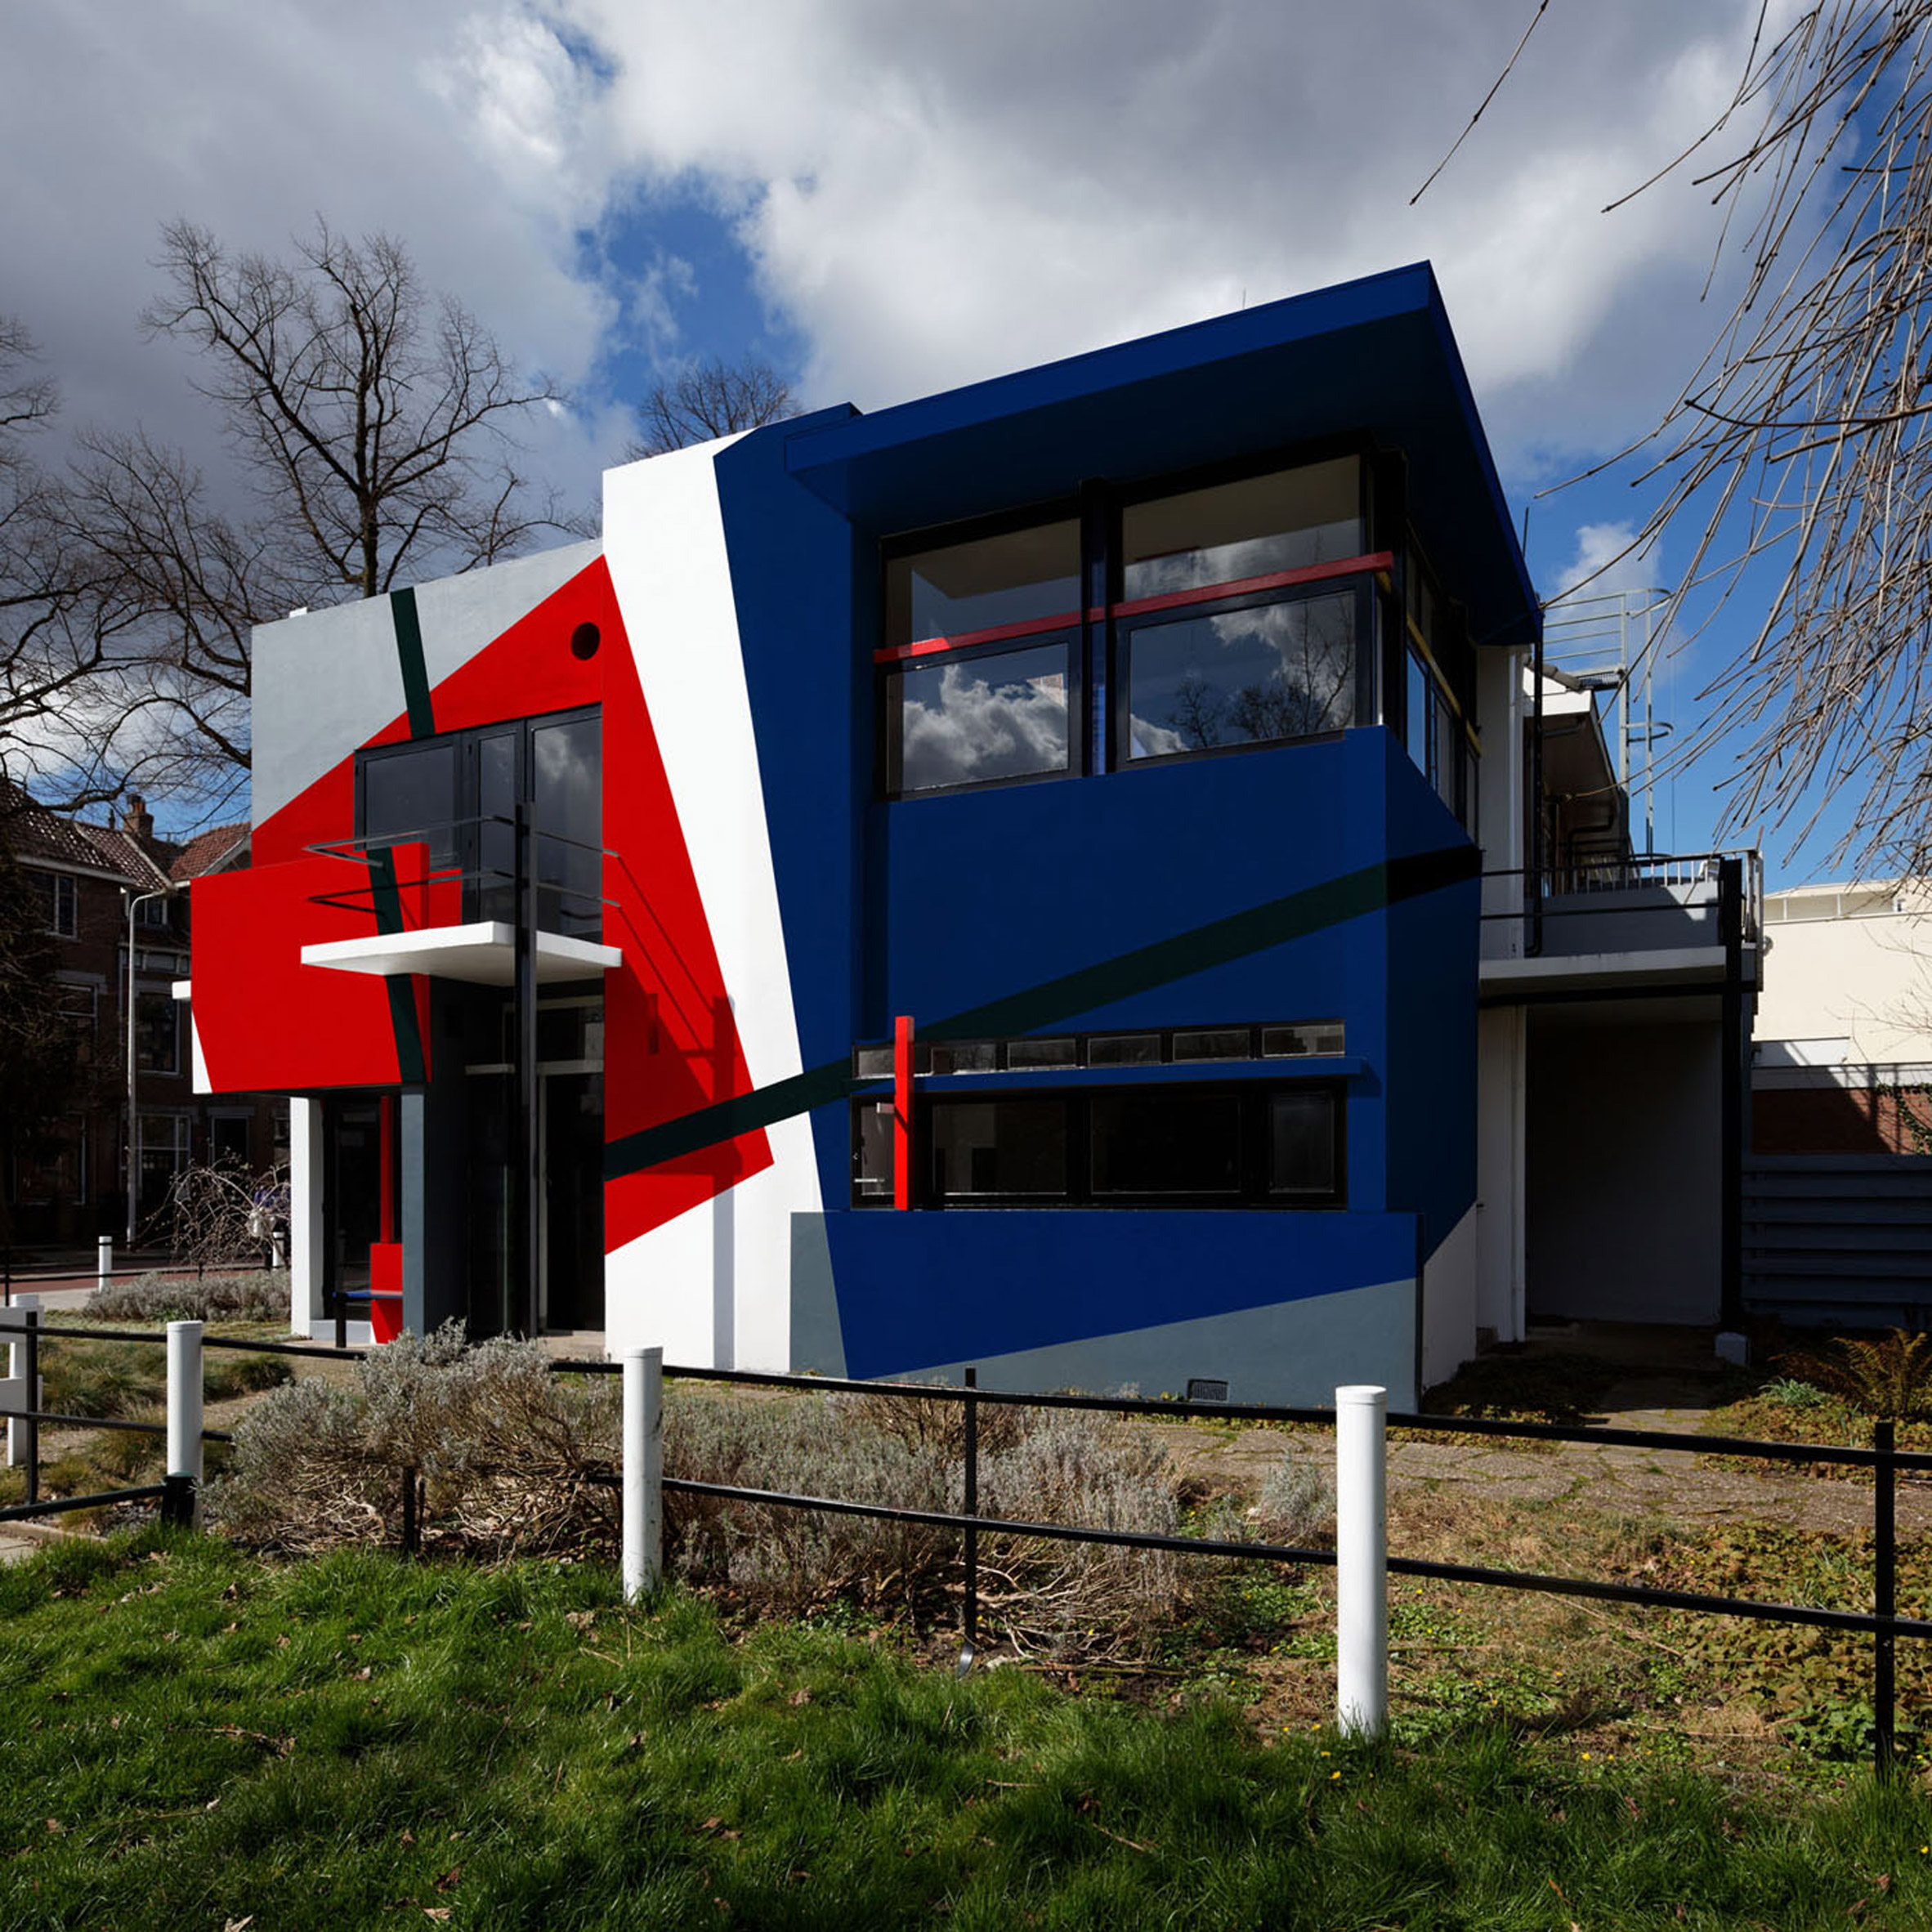 Xavier Delory imagines Gerrit Rietveld's Schröder House covered in primary-coloured paintwork